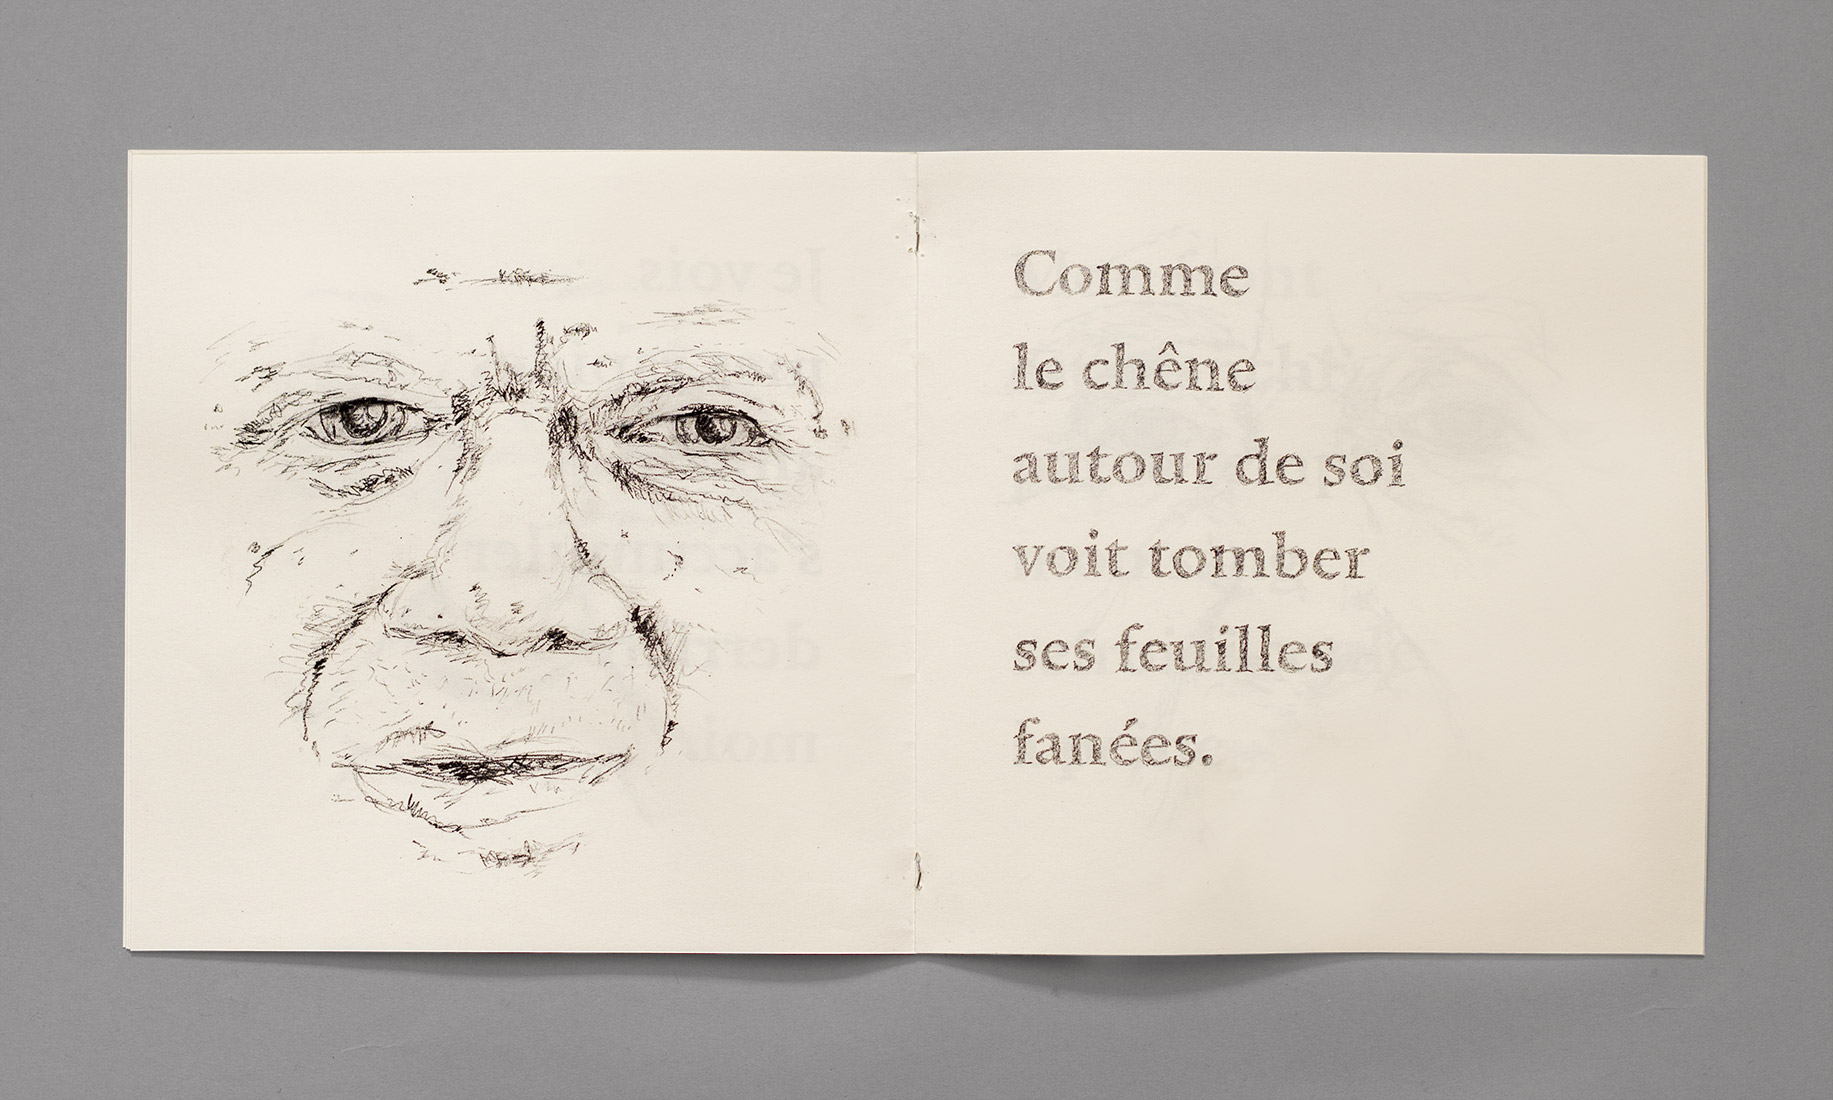 Face, old man, pencil drawing, poem of Lamartine, graphic design, poetry